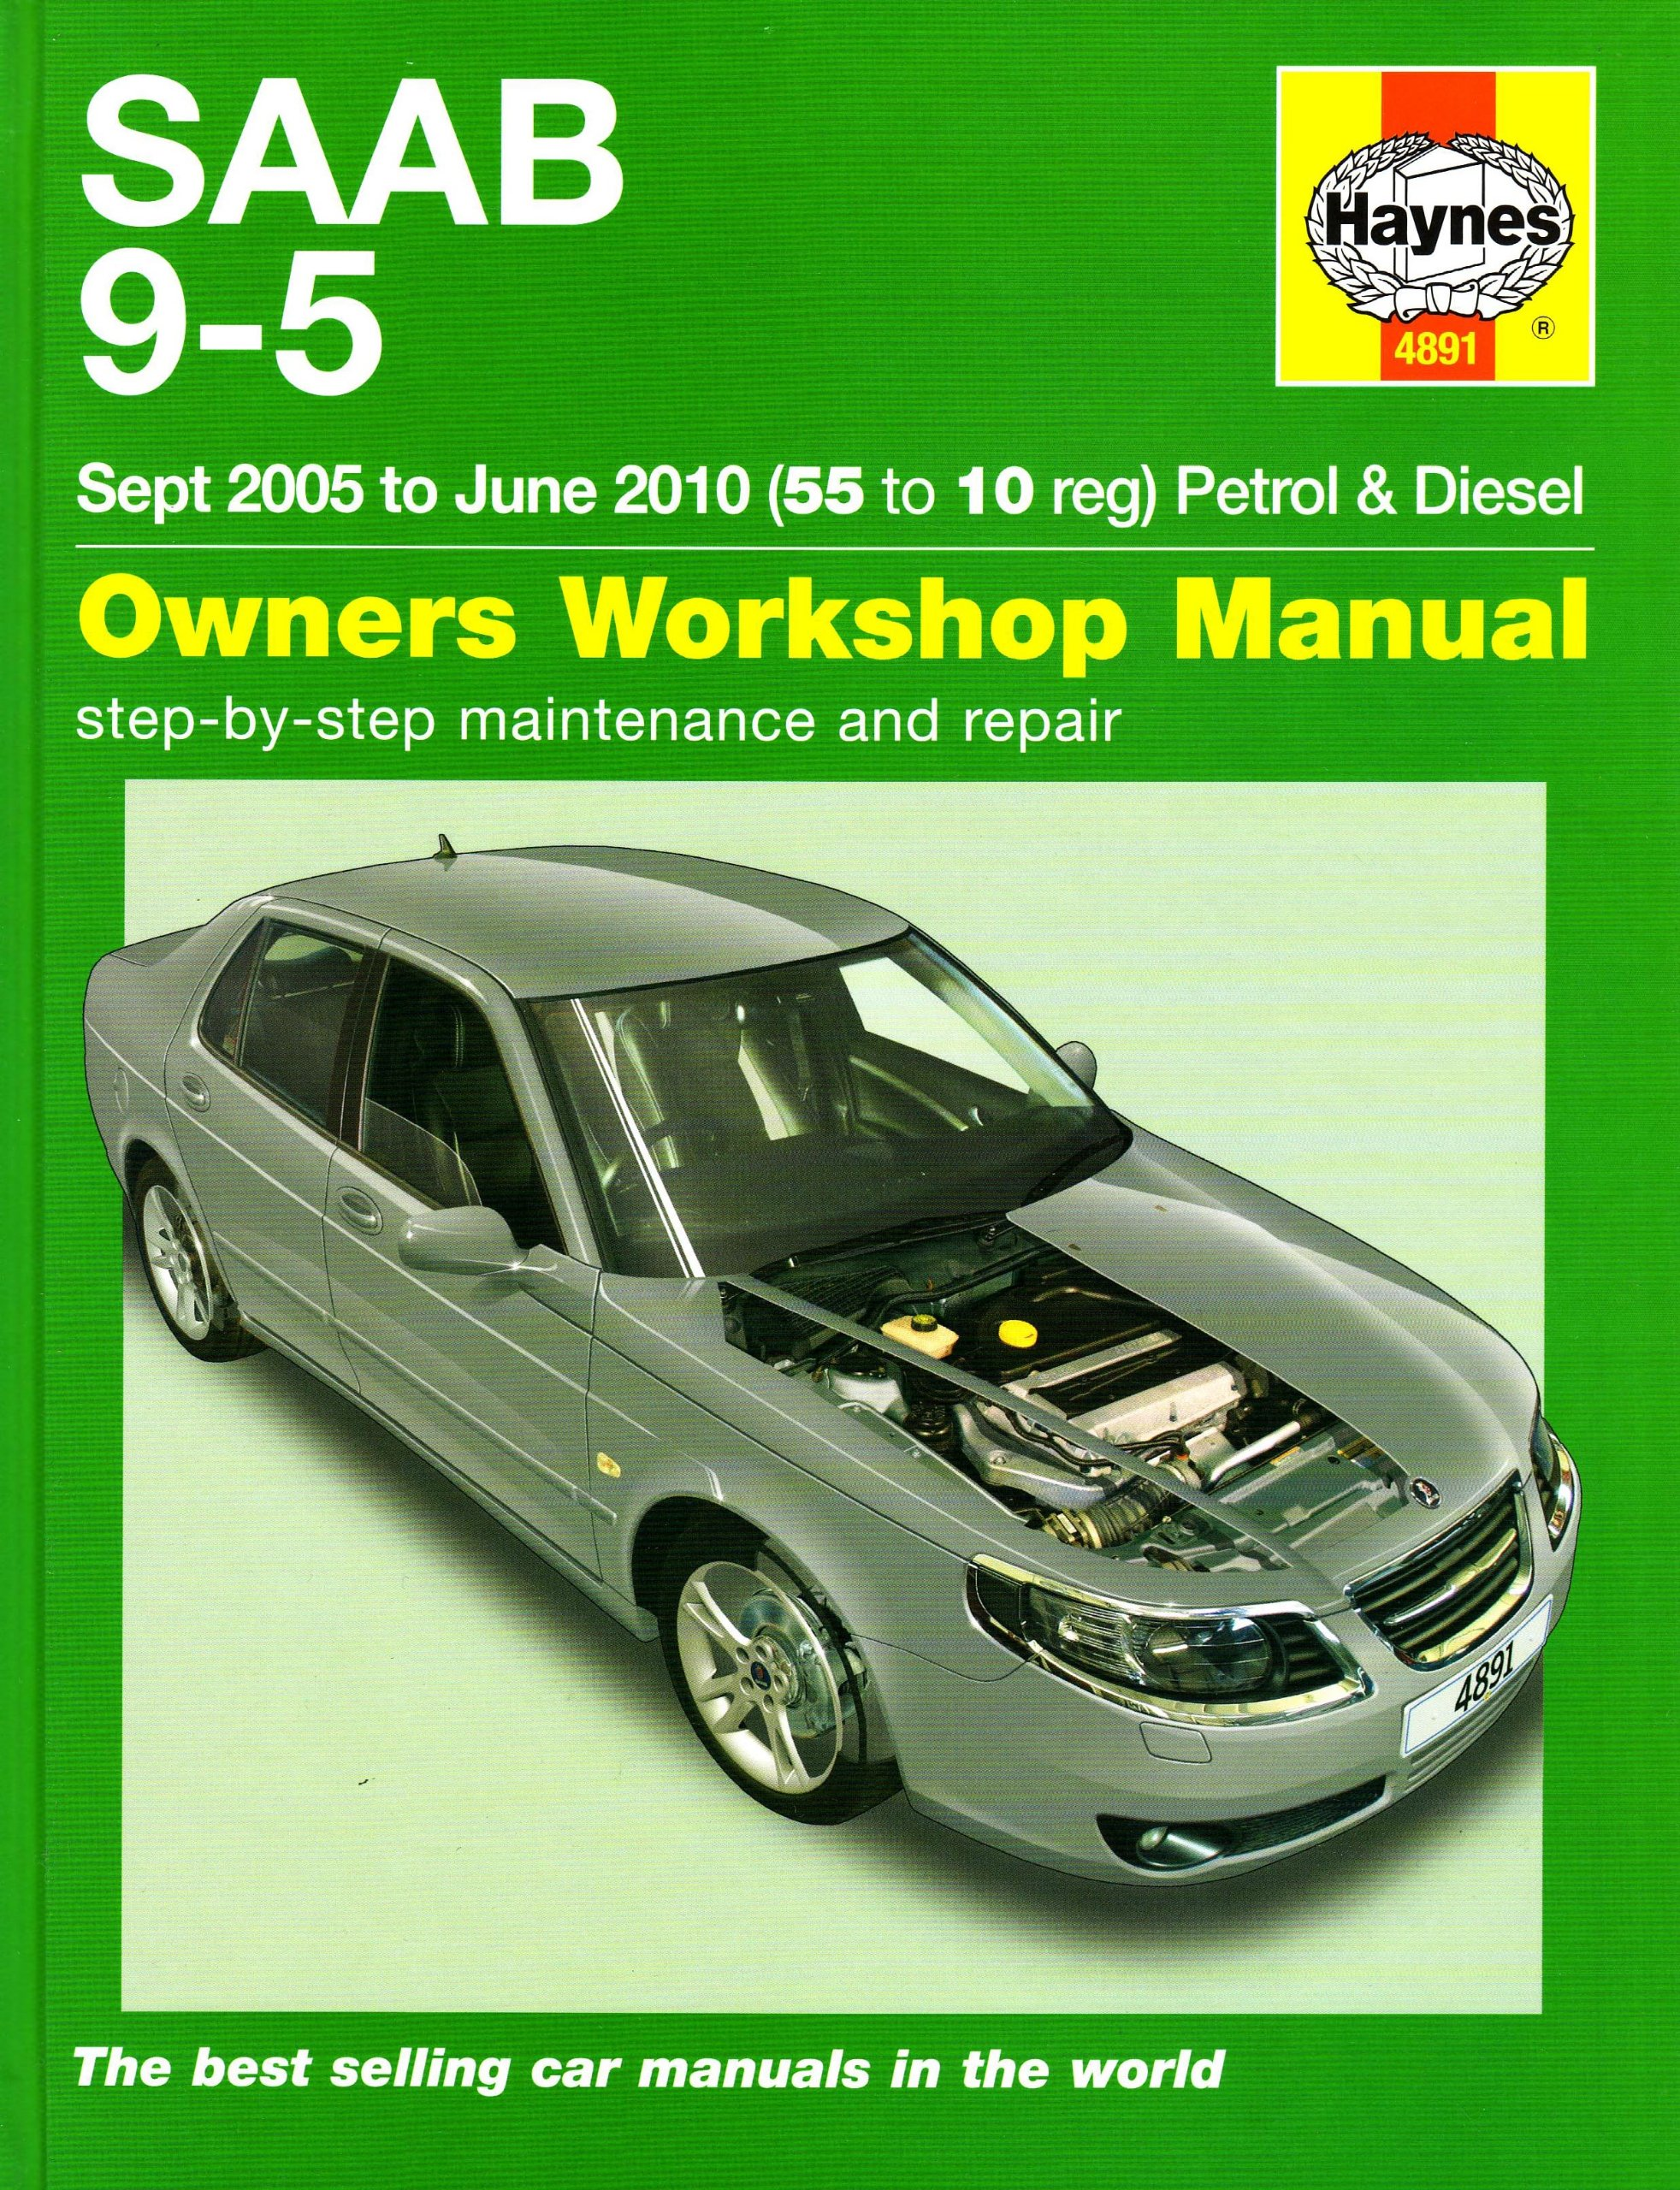 Saab 9 5 petrol diesel service and repair manual 2005 2010 haynes service and repair manuals amazon co uk peter t gill 5054001177242 books